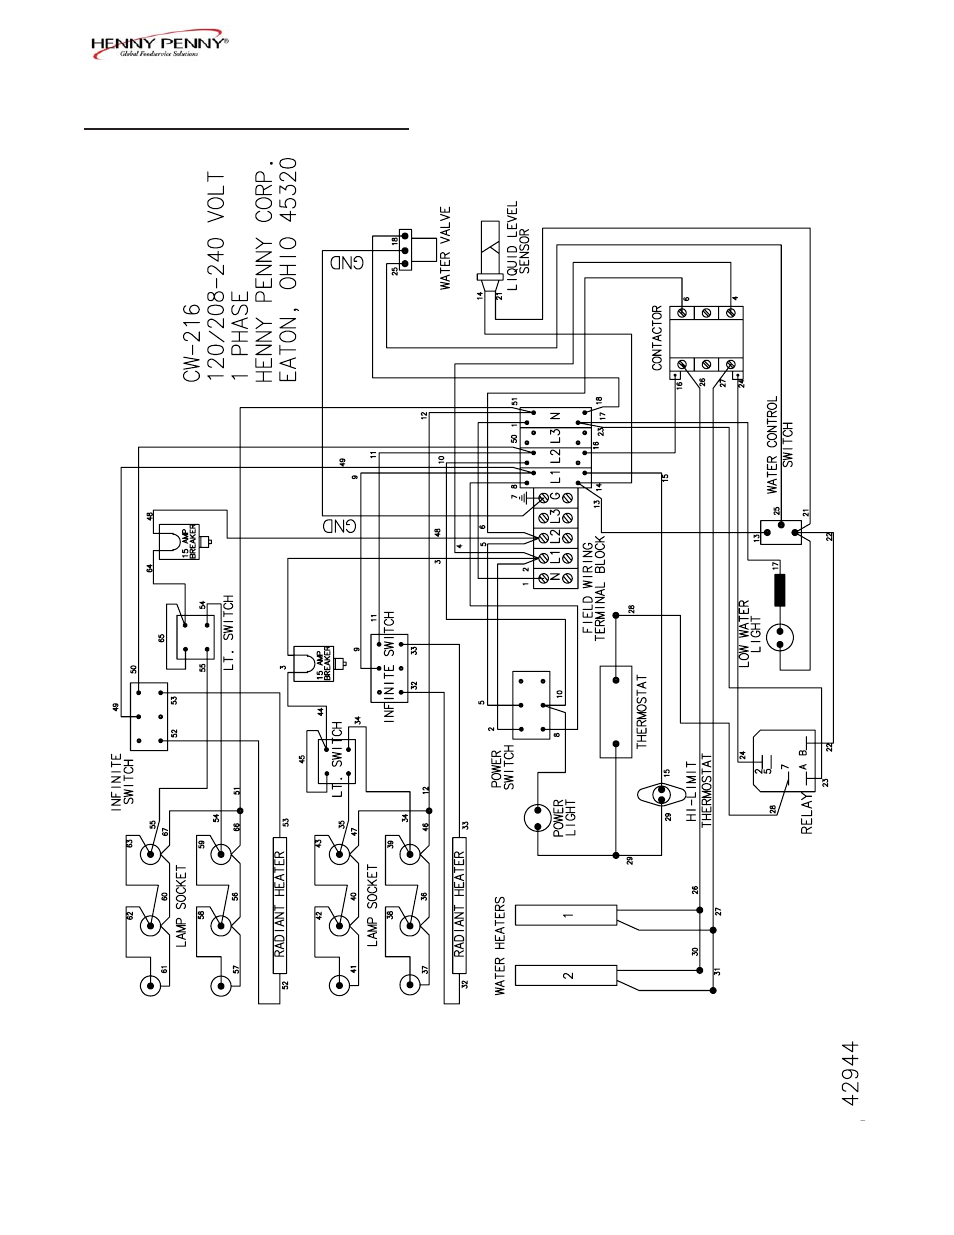 Henny Penny Cw 114 User Manual Page 25 41 Also For 216 Ohio Home Wiring Circuit Diagram